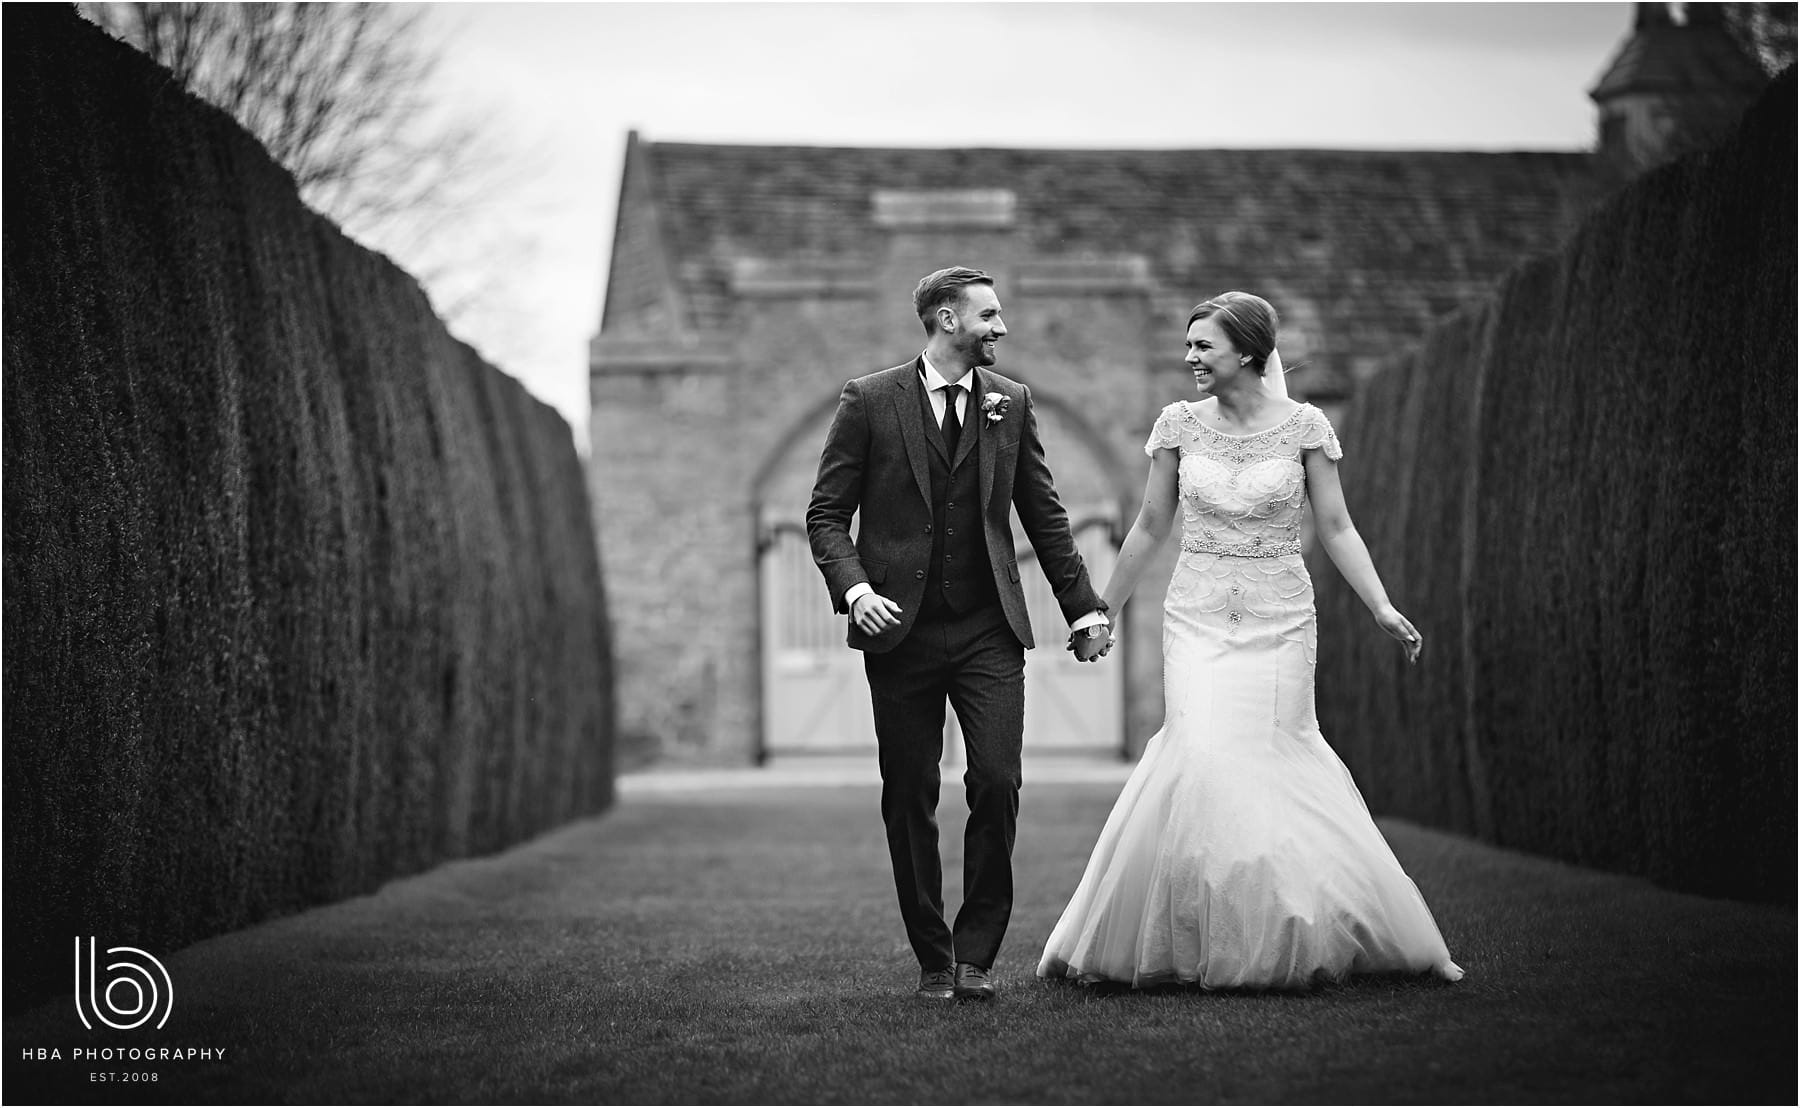 The bride and groom wlaking towards Hardwick Hall on their wedding day